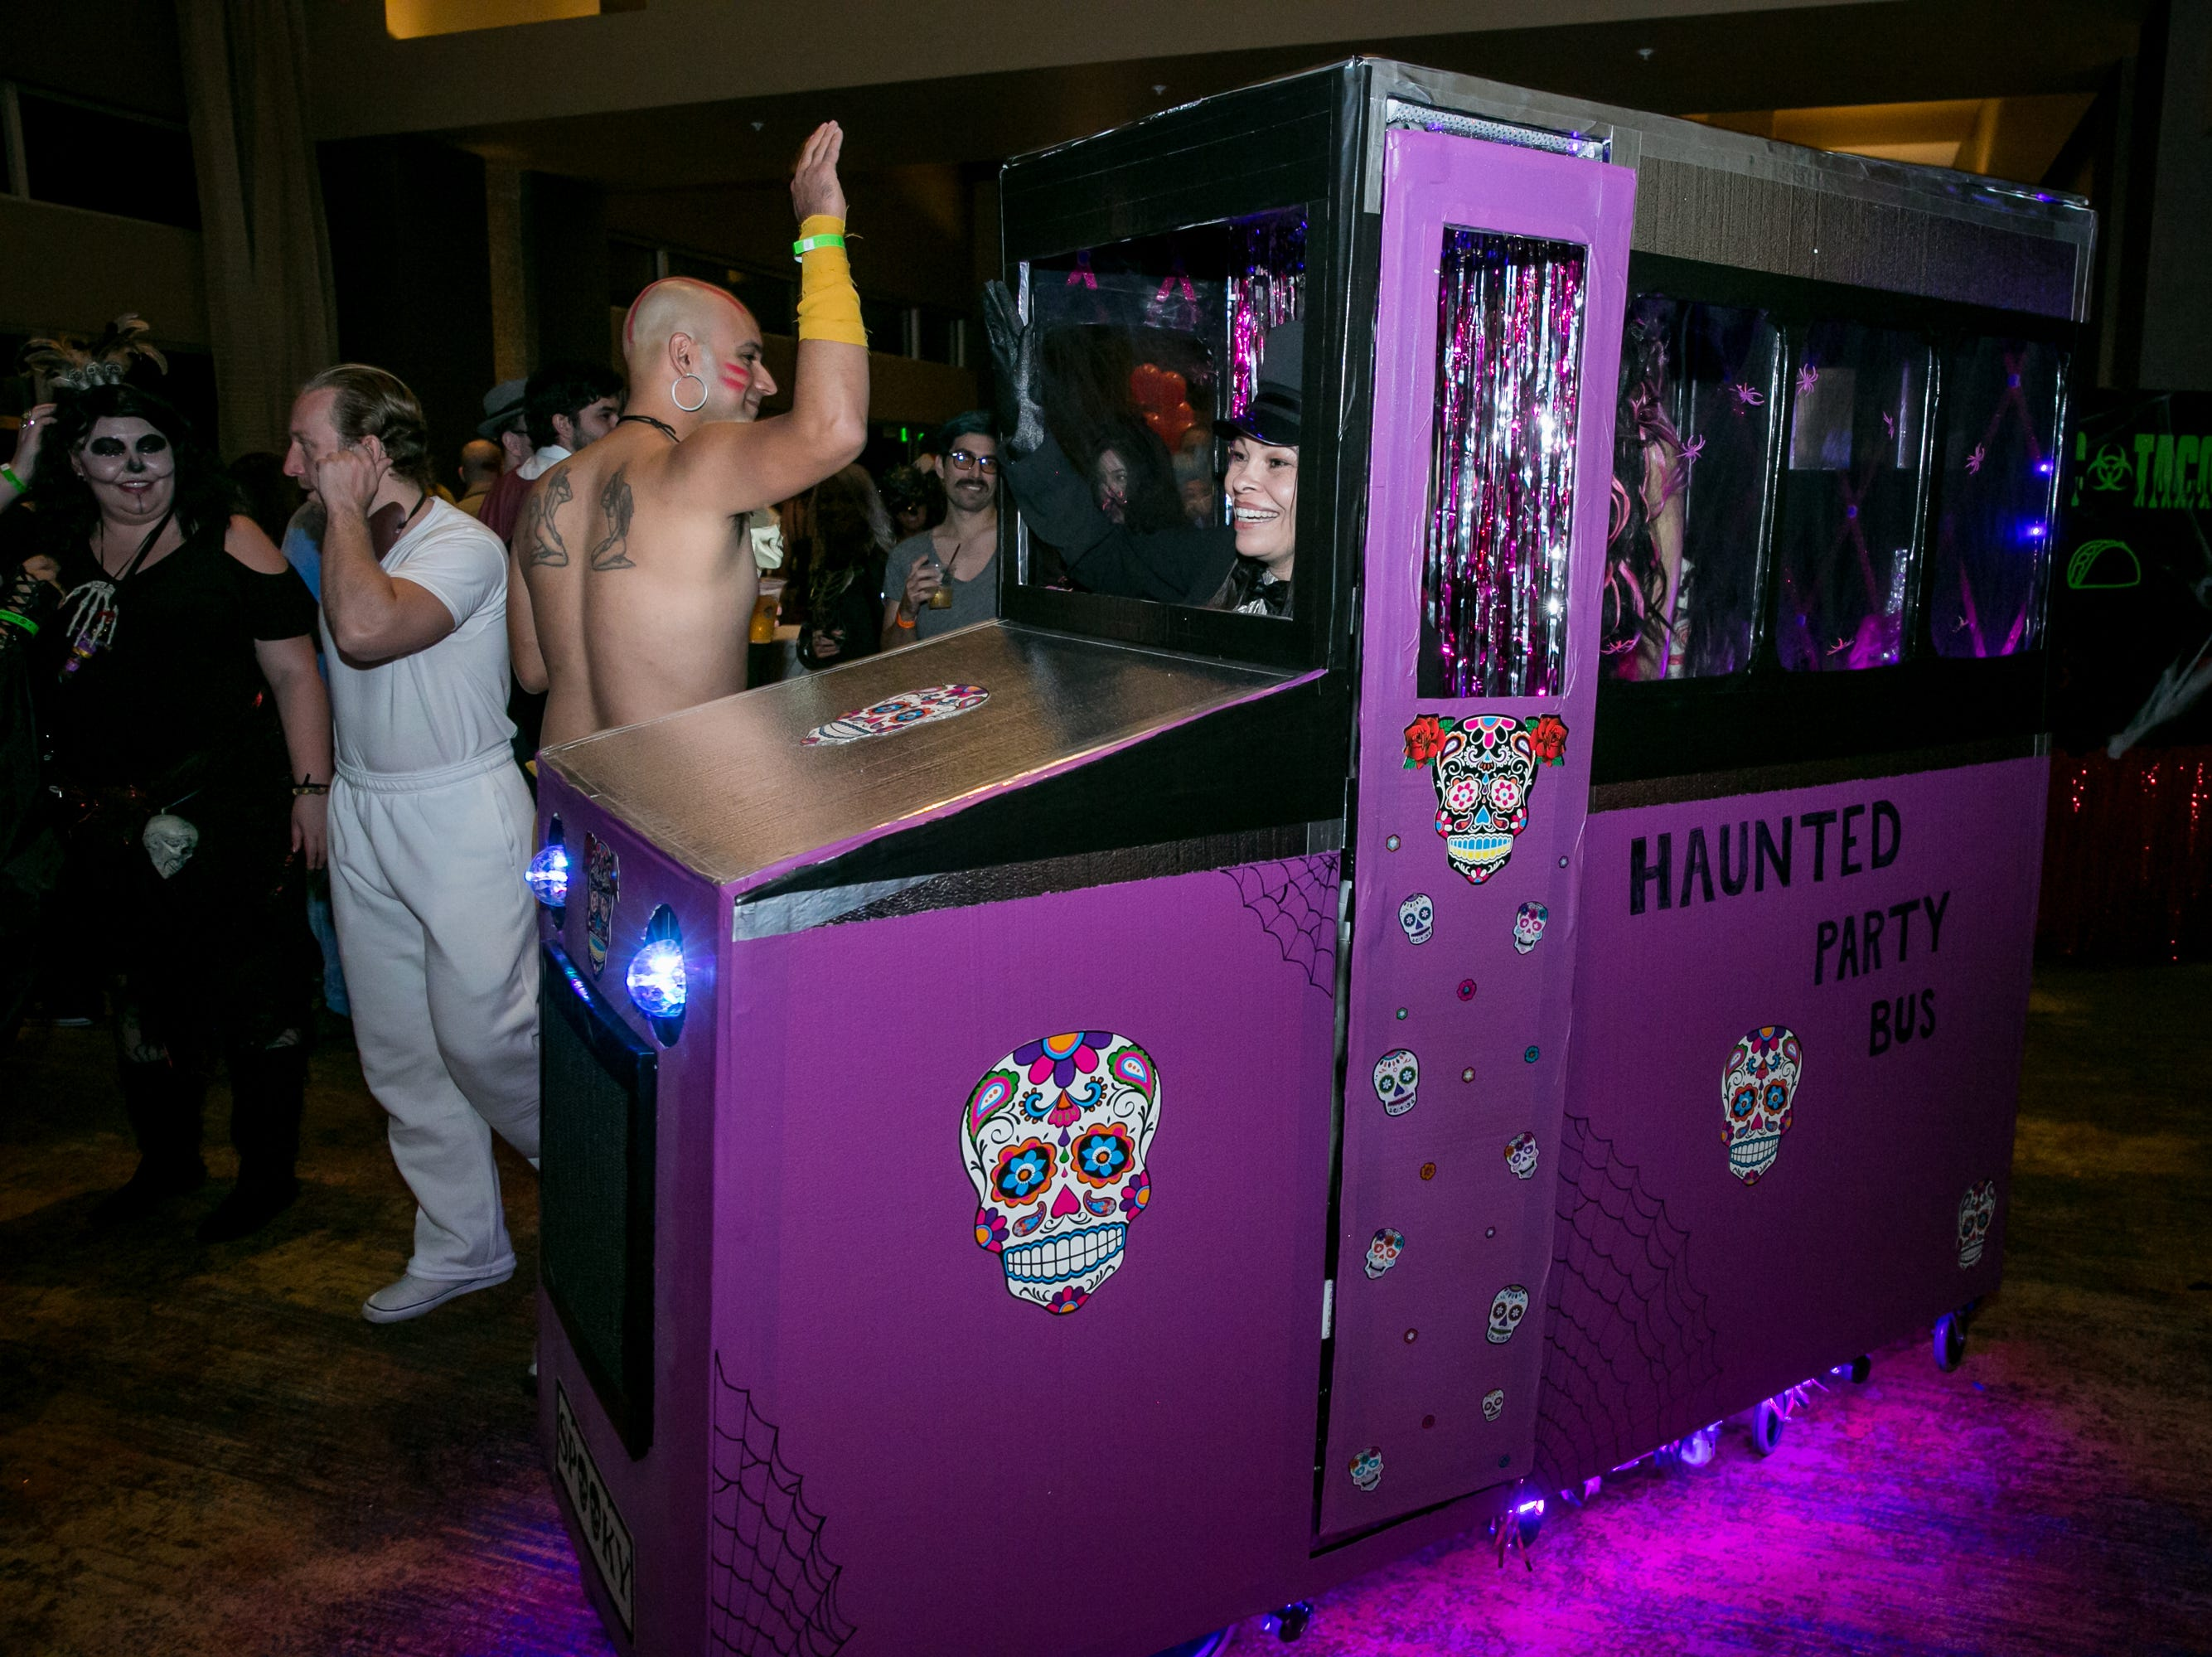 The party bus was a clever costume idea during Wicked Ball at Talking Stick Resort on Saturday, October 27, 2018.